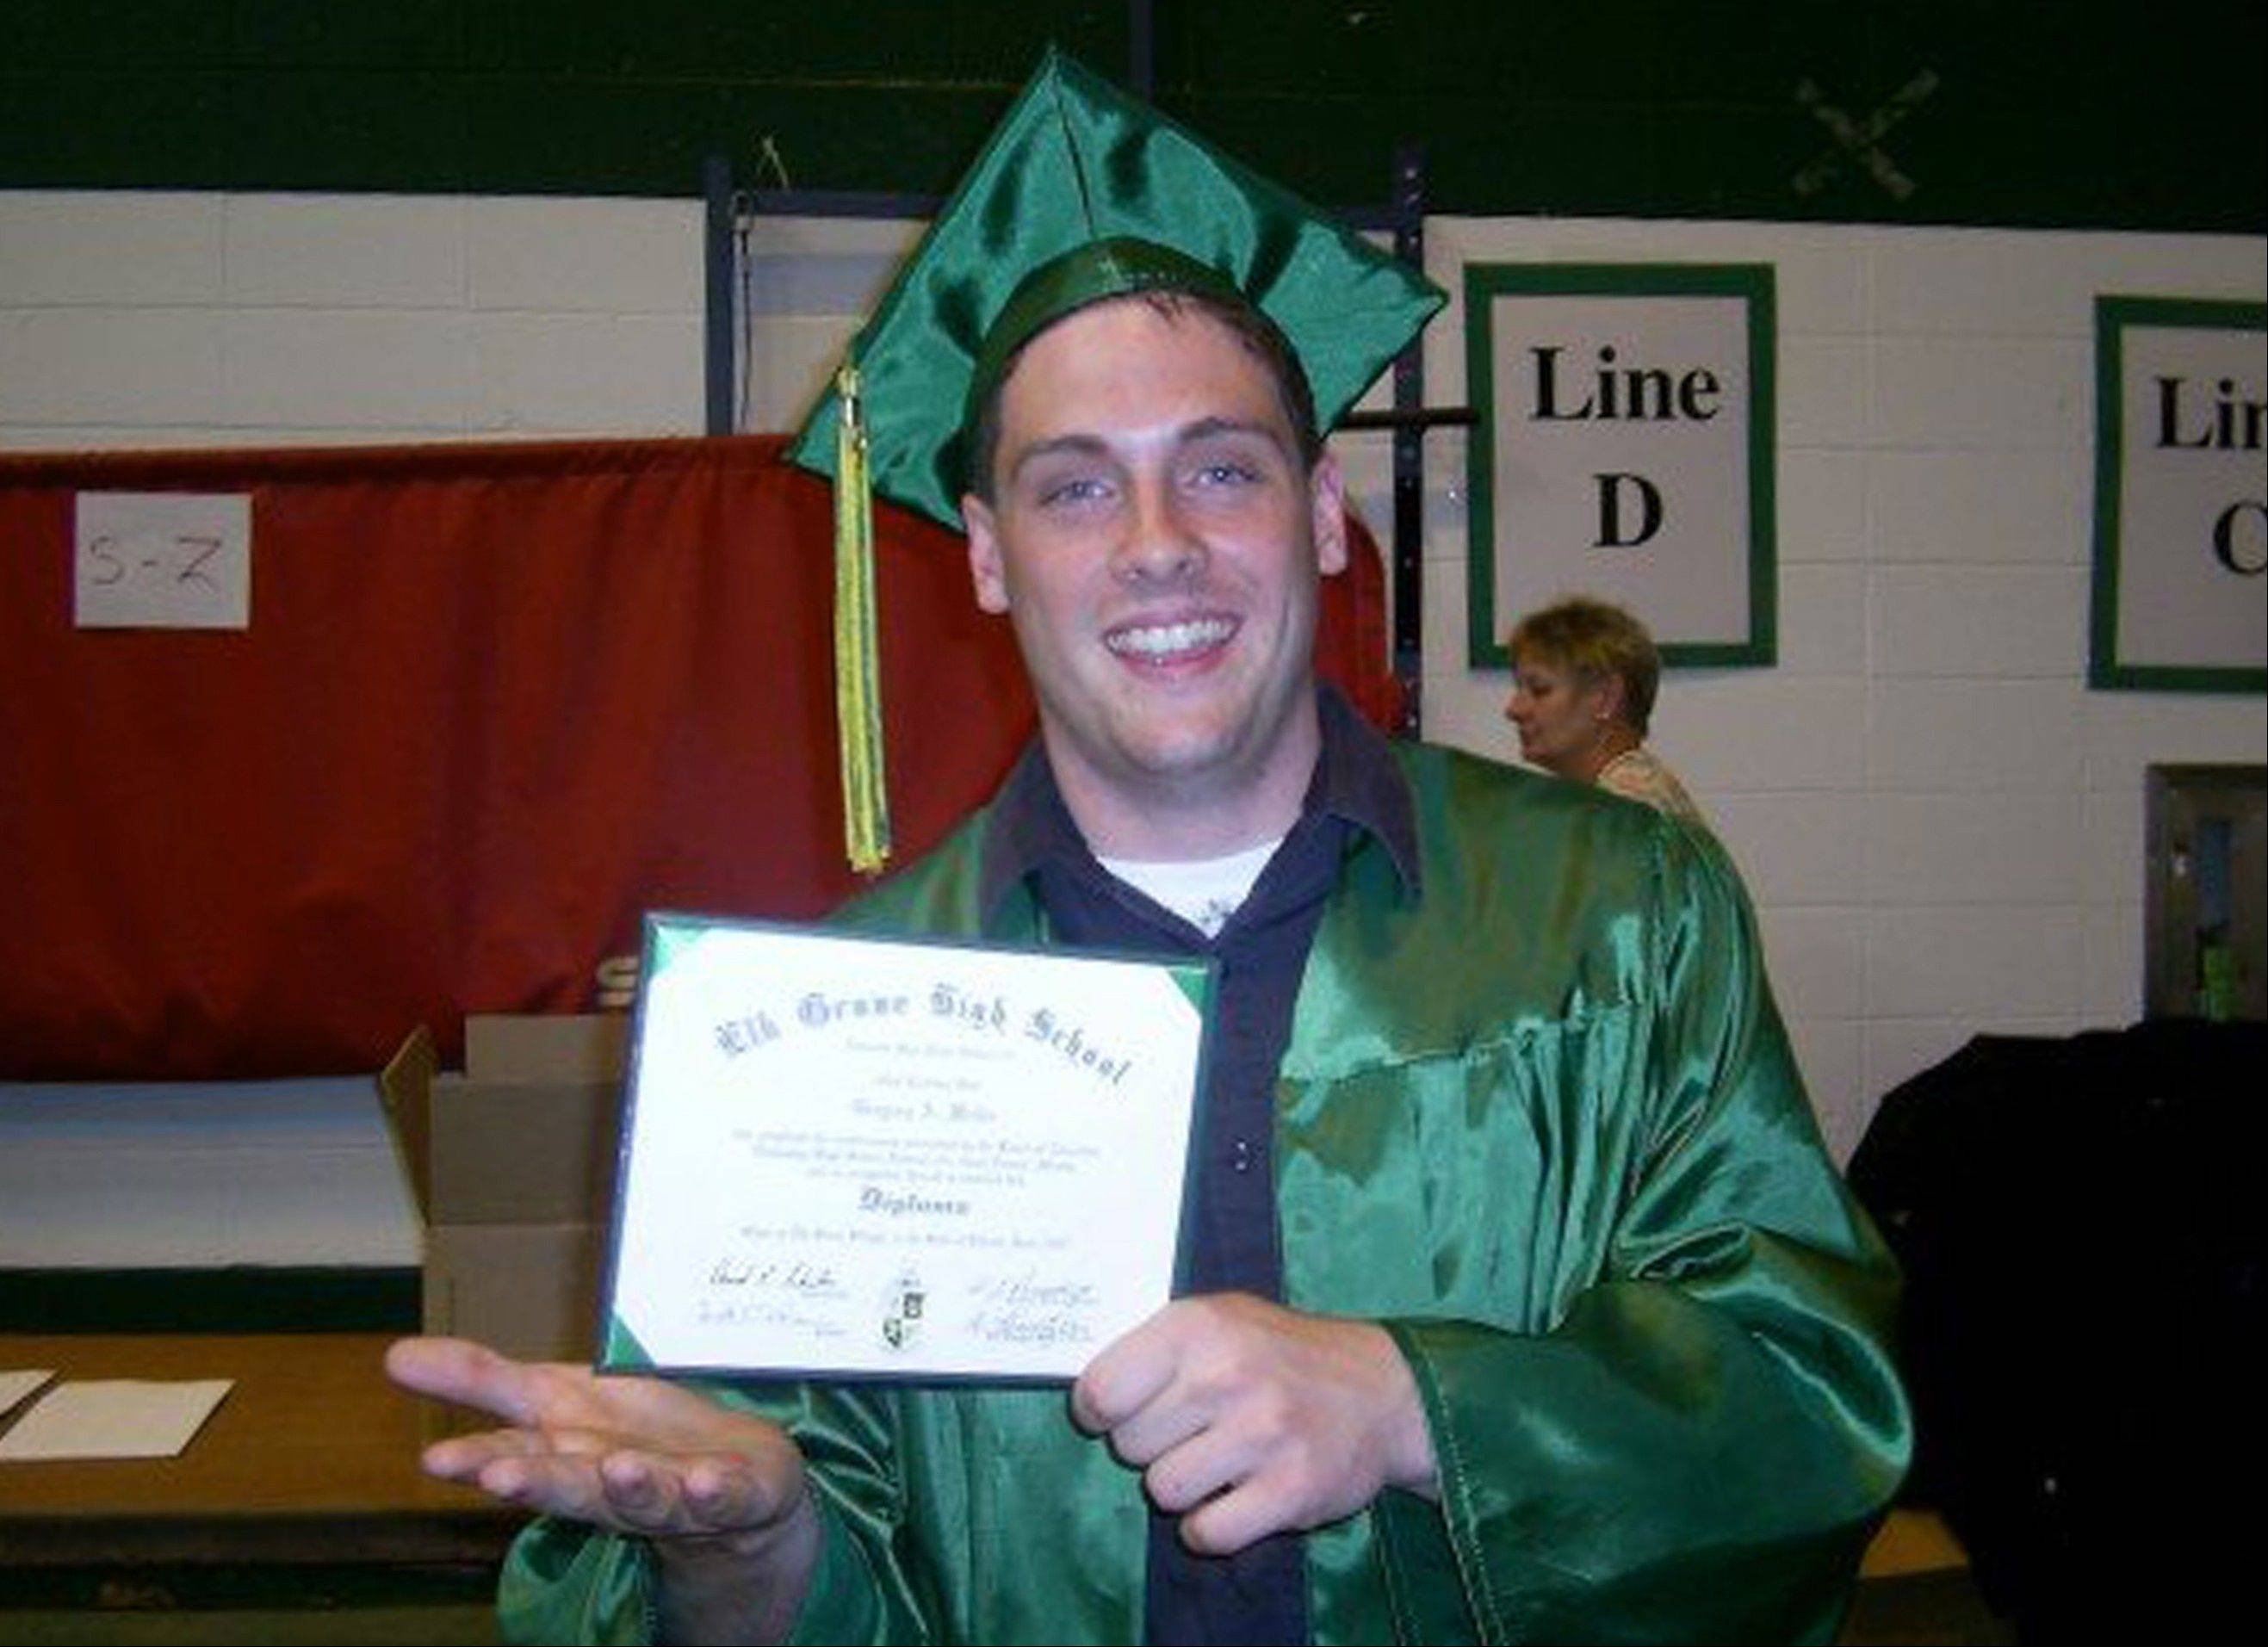 This June 2007 family photo provided by the Weiler/Meyers family shows, Greg Weiler at his high school graduation from Elk Grove High School, in Elk Grove Village, Ill. Wieler who has a a long history of mental illness has been charged with plotting to attack dozens of churches in Oklahoma with homemade Molotov cocktails. Weiler's parents both committed suicide, and Weiler has battled drug addiction and �a lot of mental illnesses that led to a suicide attempt in the eighth grade, said his cousin Johnny Meyers. Meyers' parents served as legal guardians for Weiler after the death of his parents. He said family members in suburban Chicago believe Weiler must have stopped taking his medication and planned to go to Oklahoma to see him.